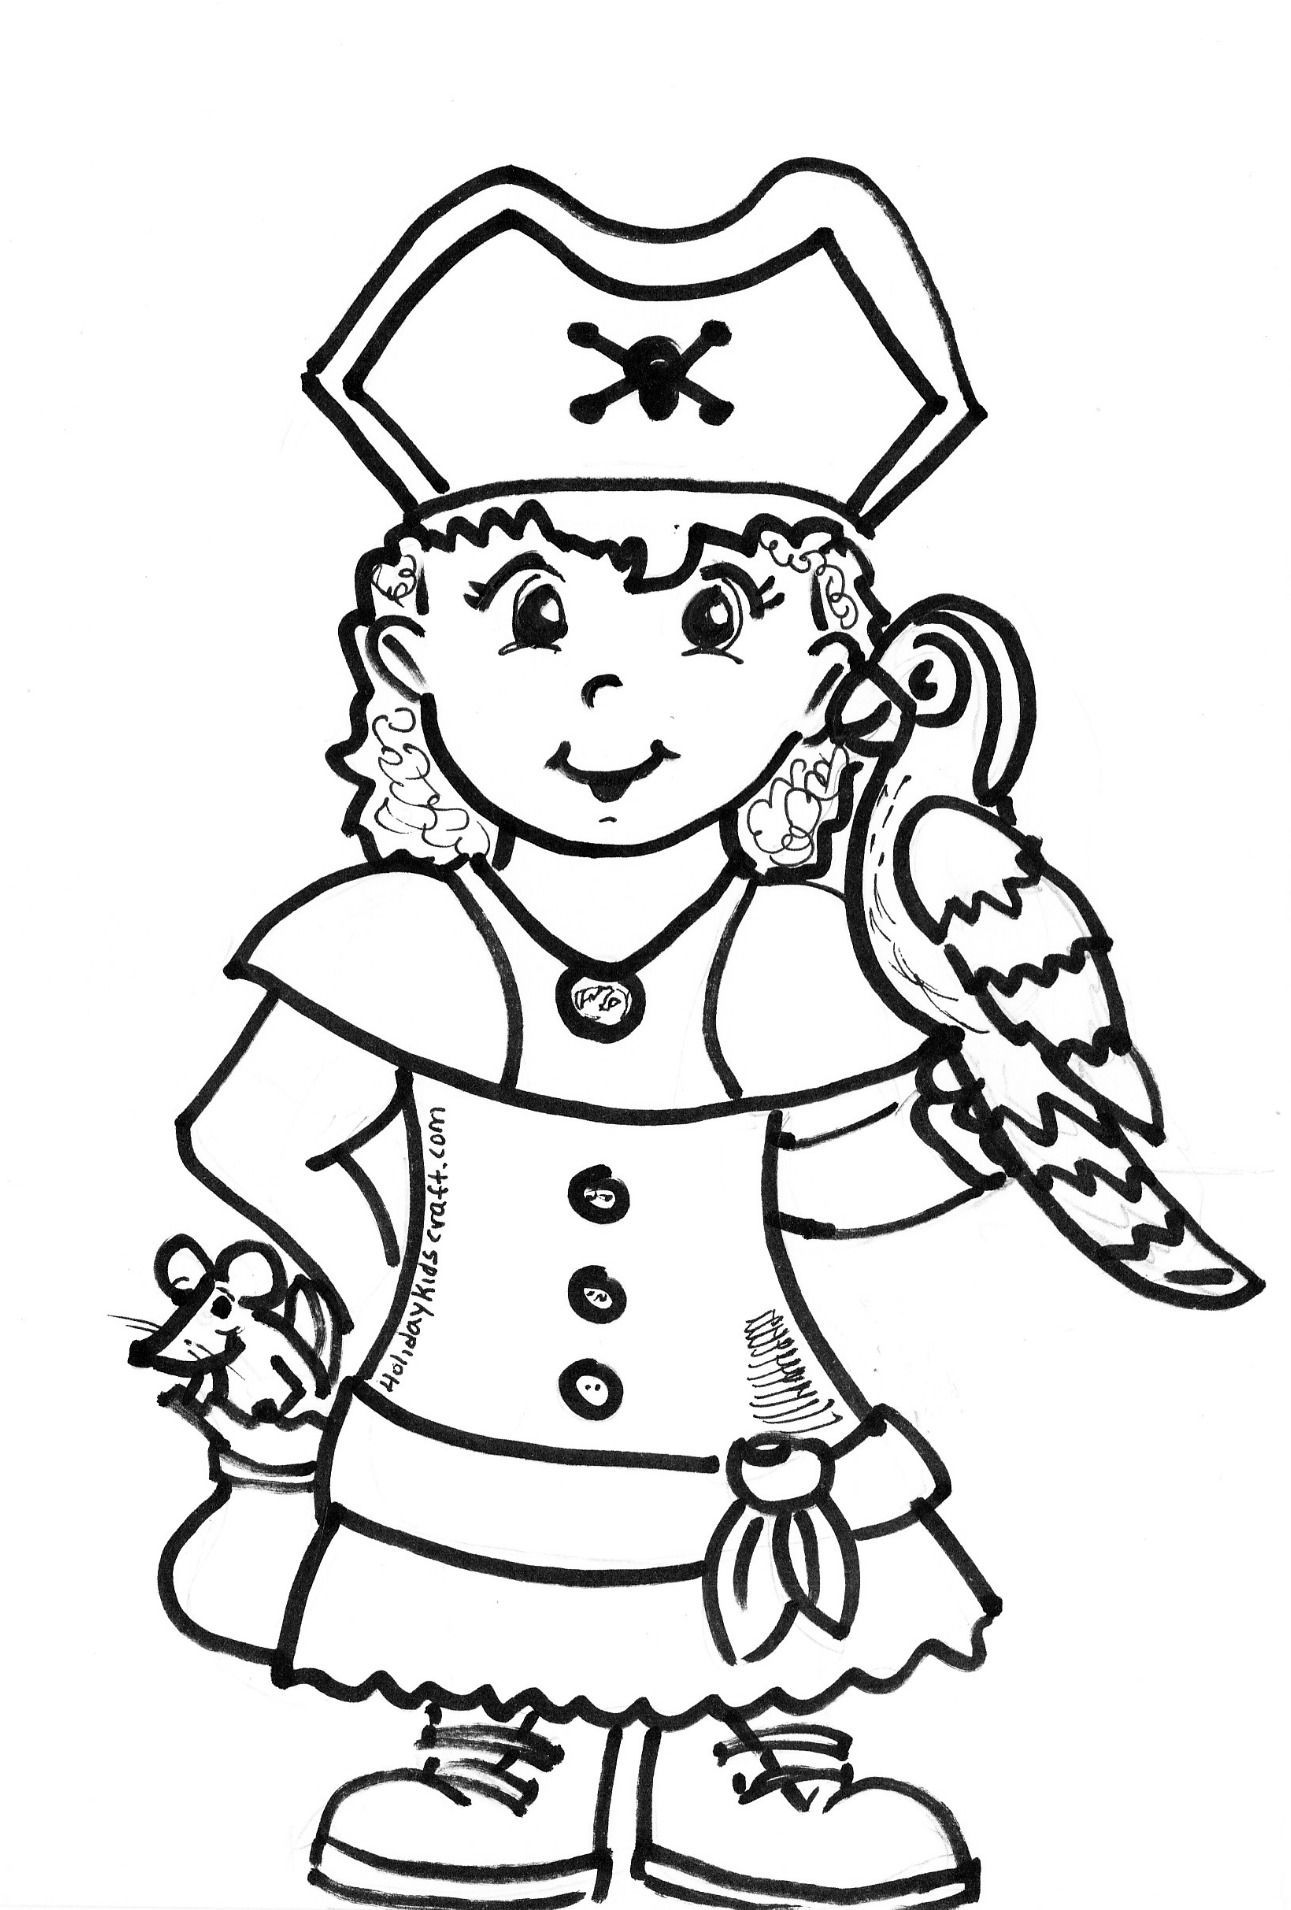 girl pirate coloring page Pirate coloring pages